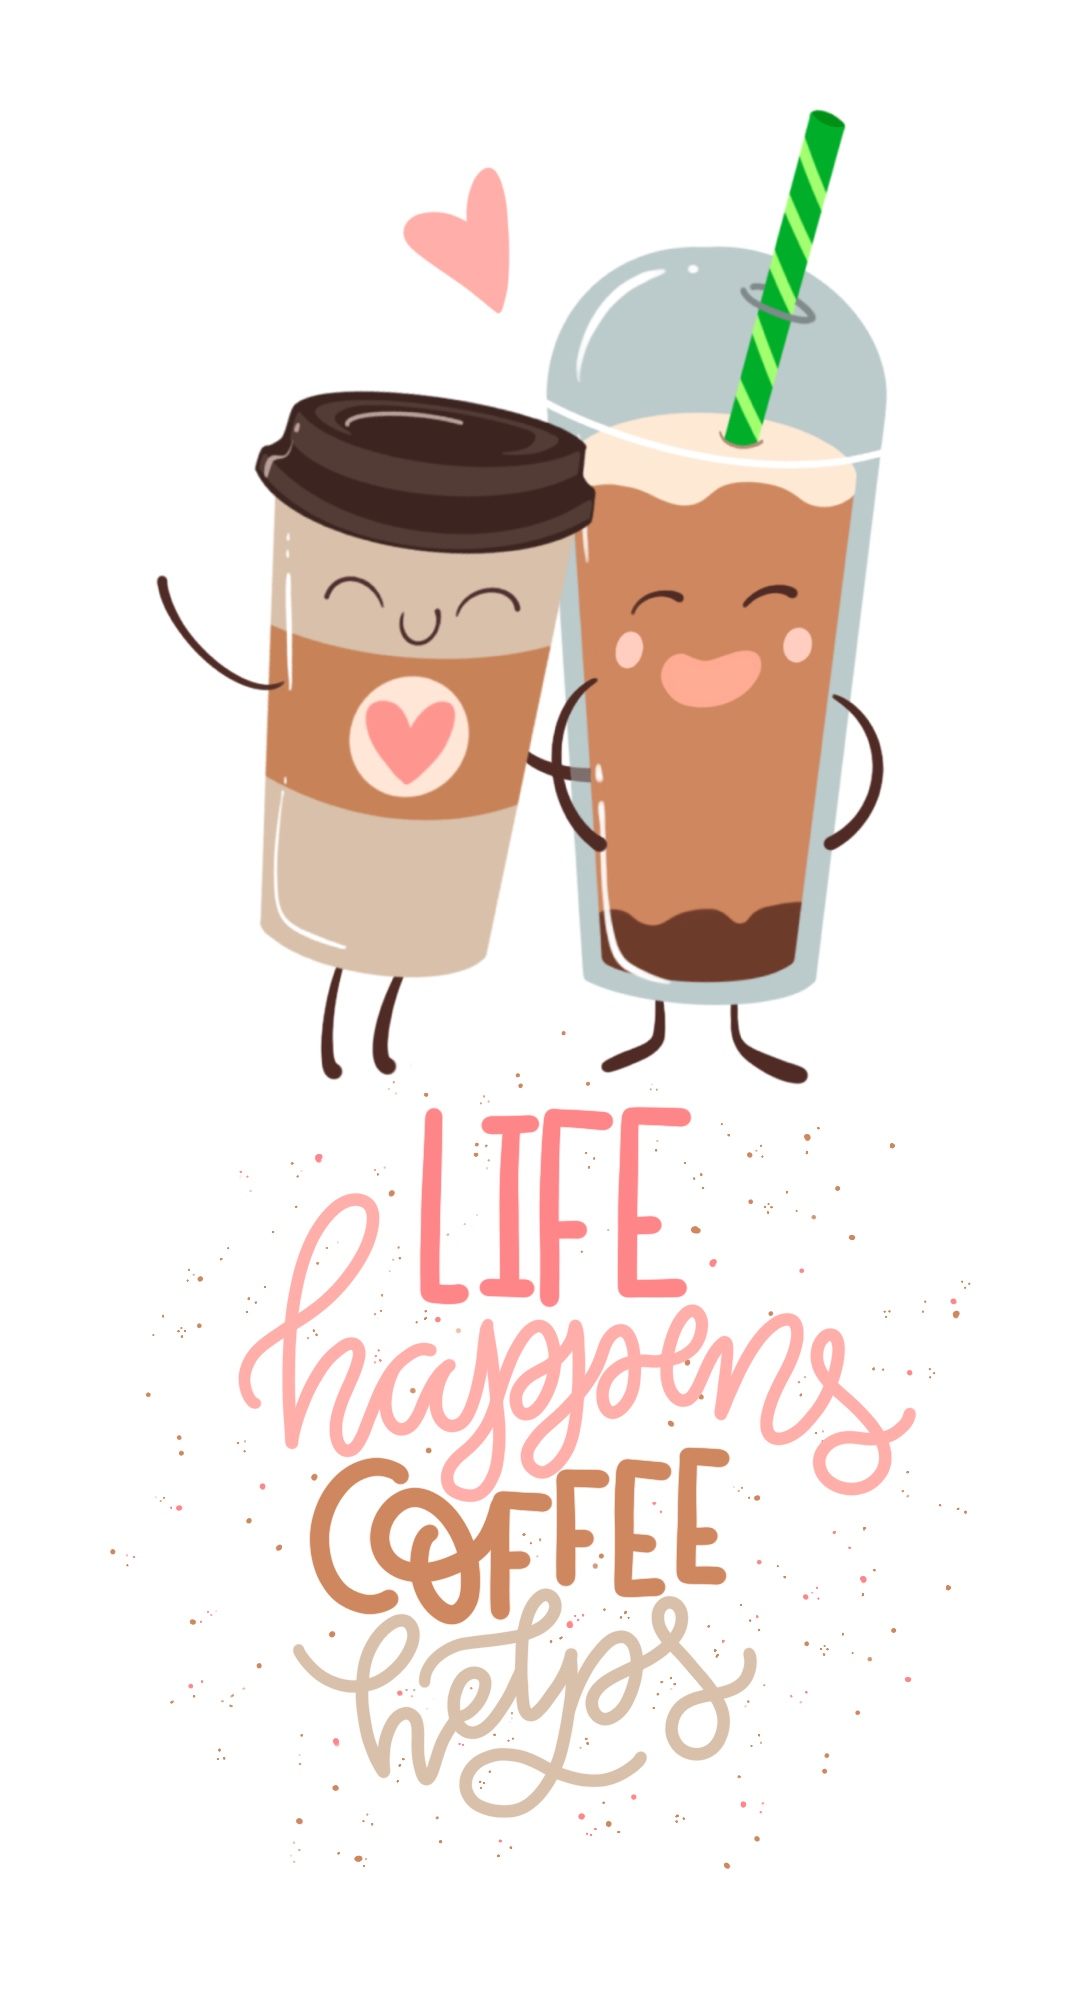 Life happens, coffee helps quote